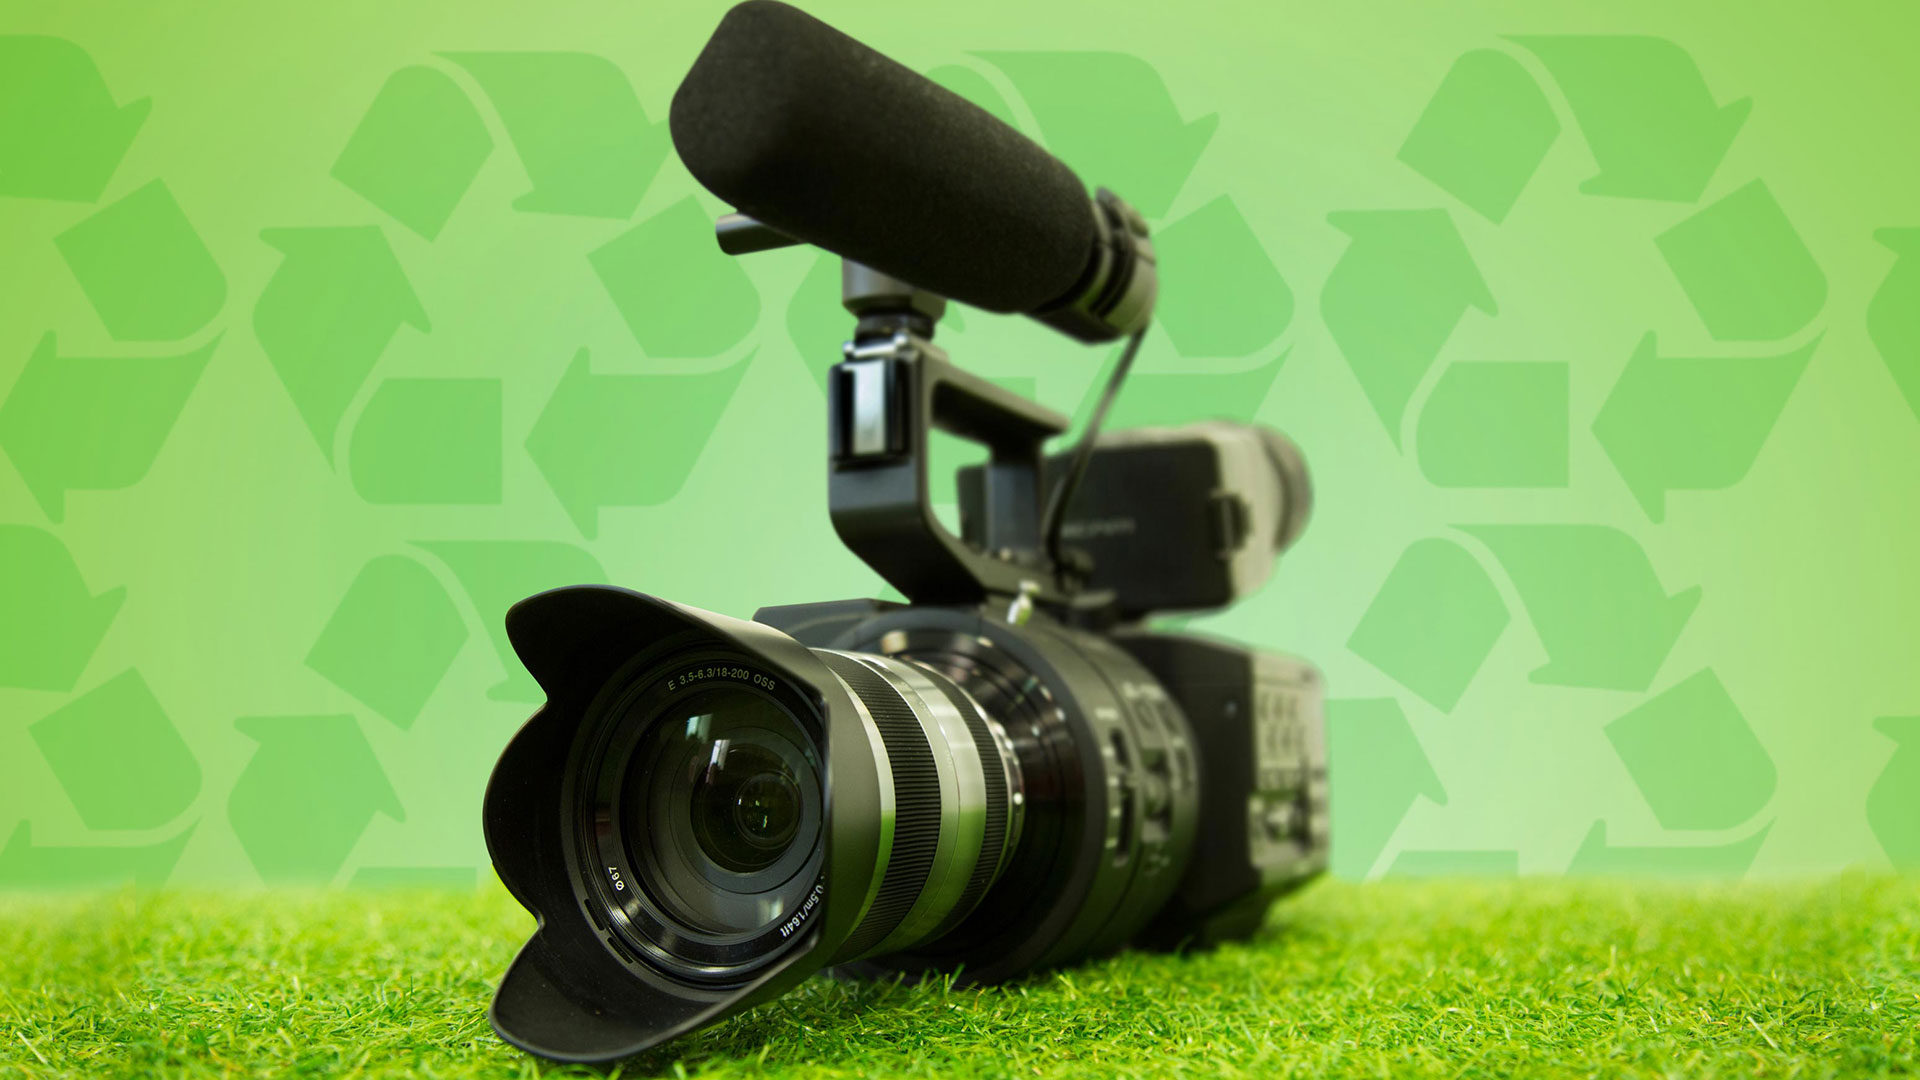 Eco-friendly filmmaking - video camera with eco-background